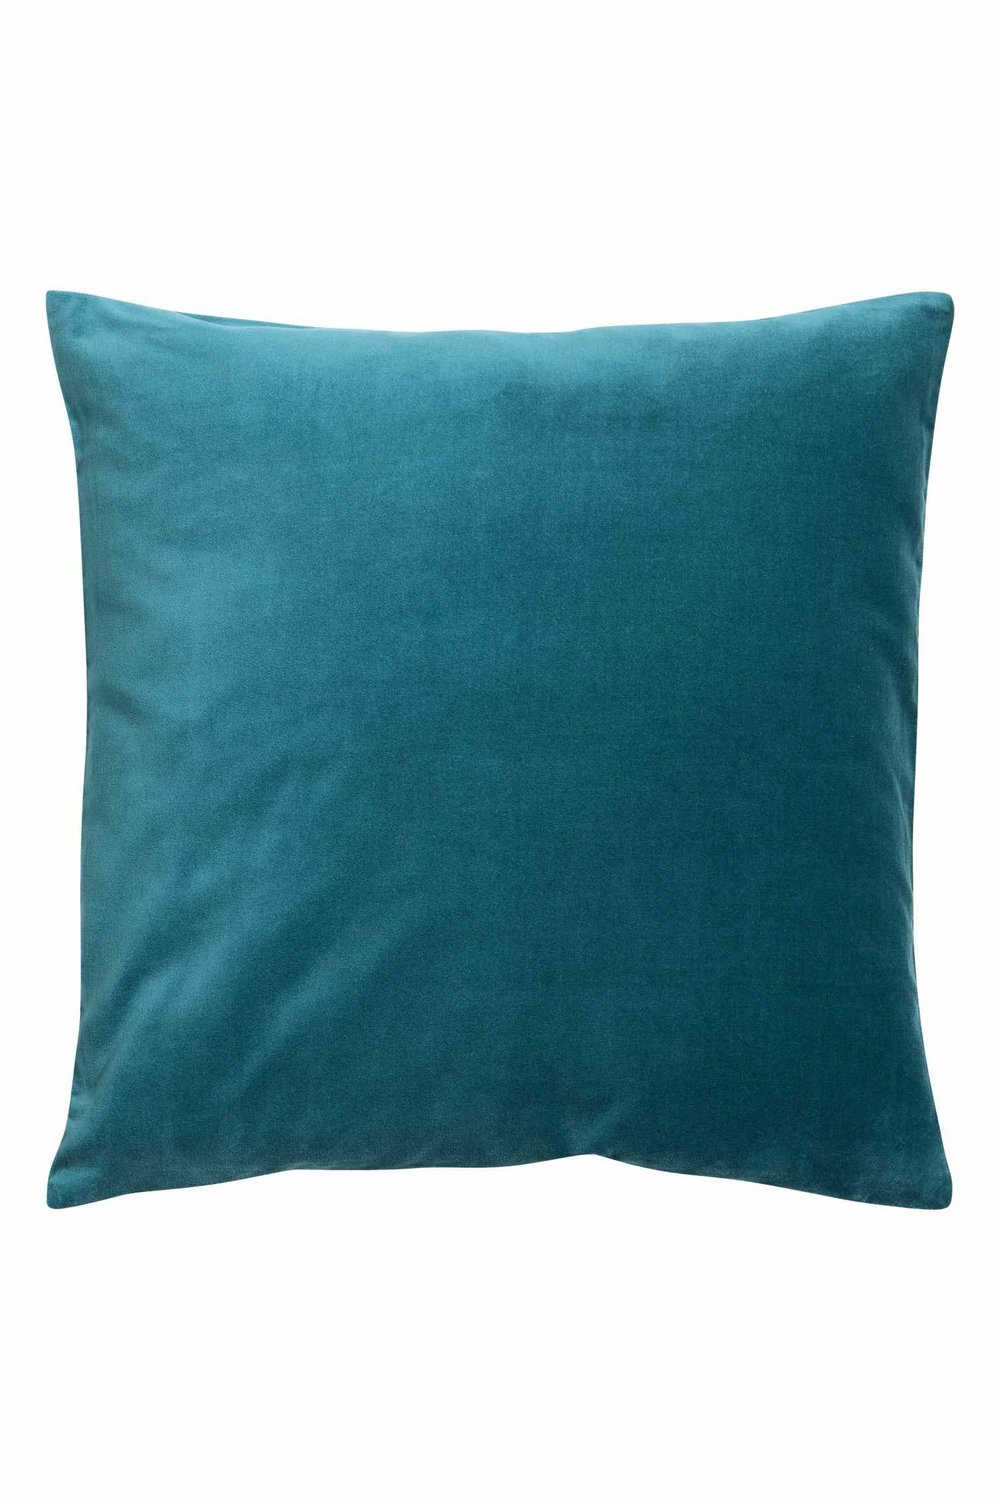 Velvet cushion cover 20in., $13